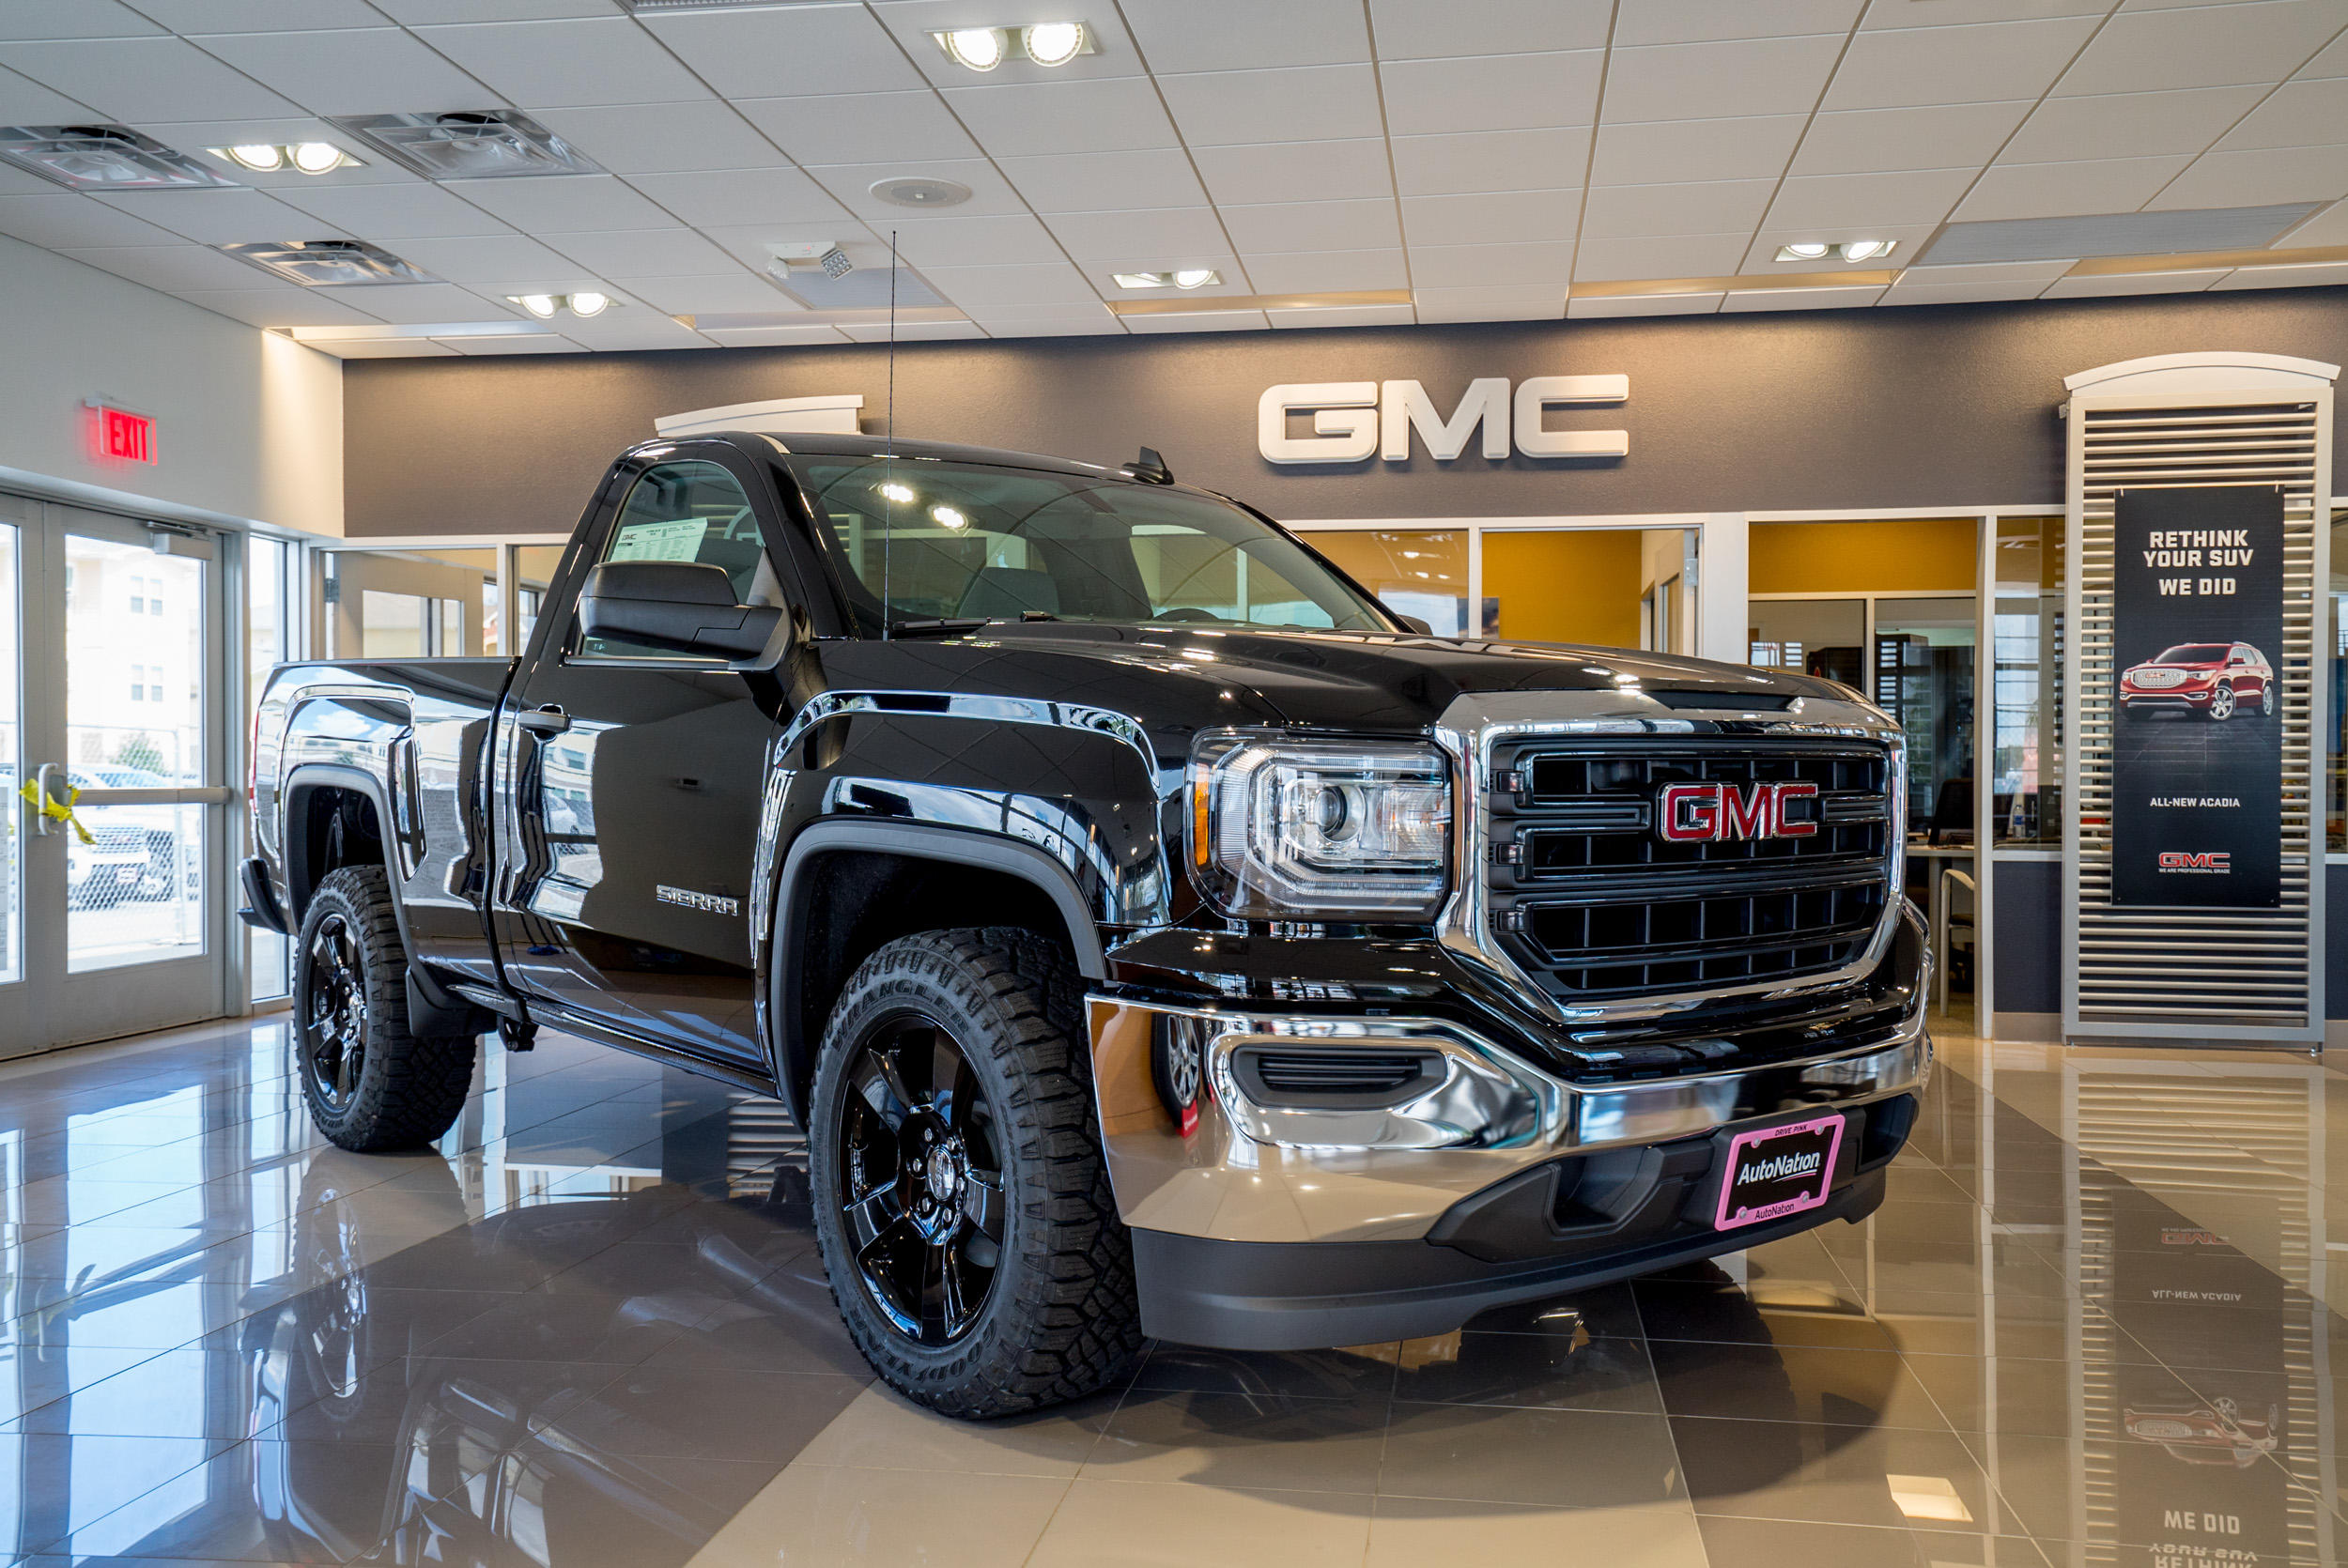 know story to the phelan gmc luxury money brand about cars jjt houston mark things truck